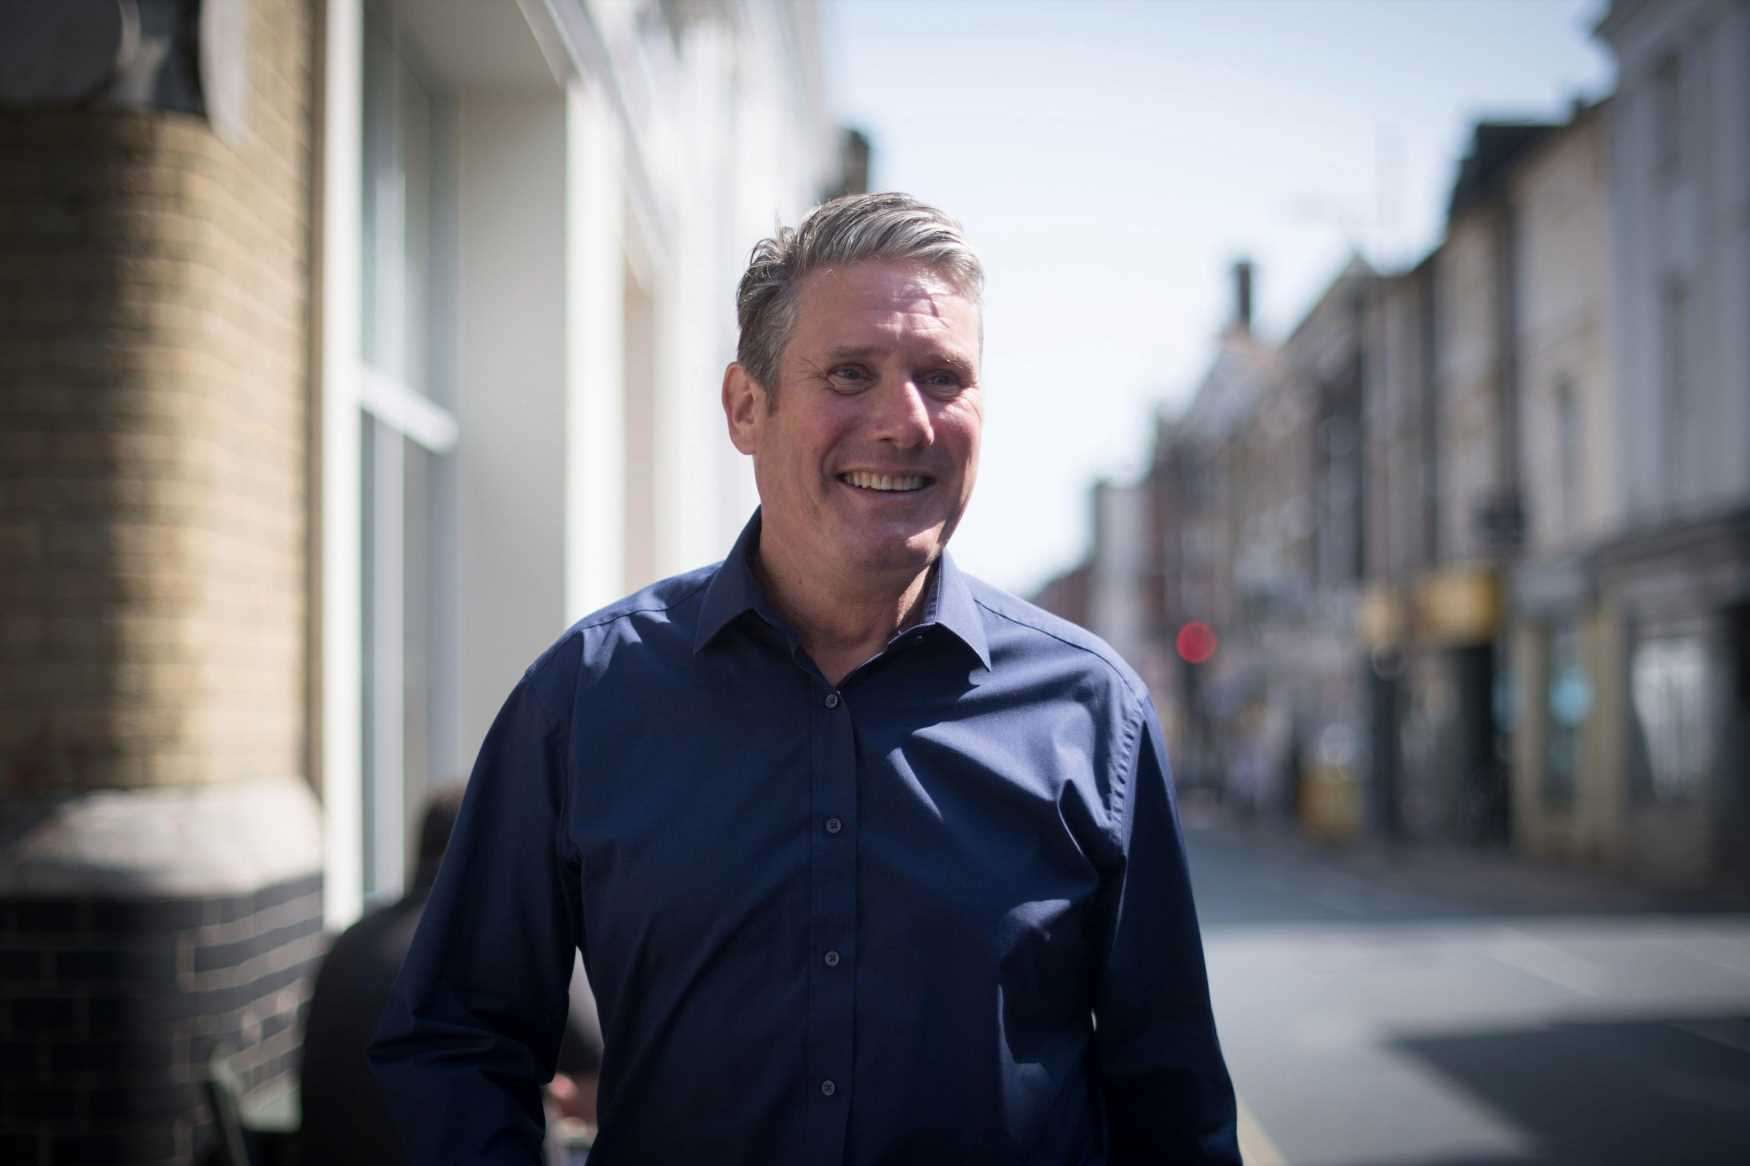 Keir Starmer will REFUSE to quit if defeated in Batley and Spen by-election tomorrow